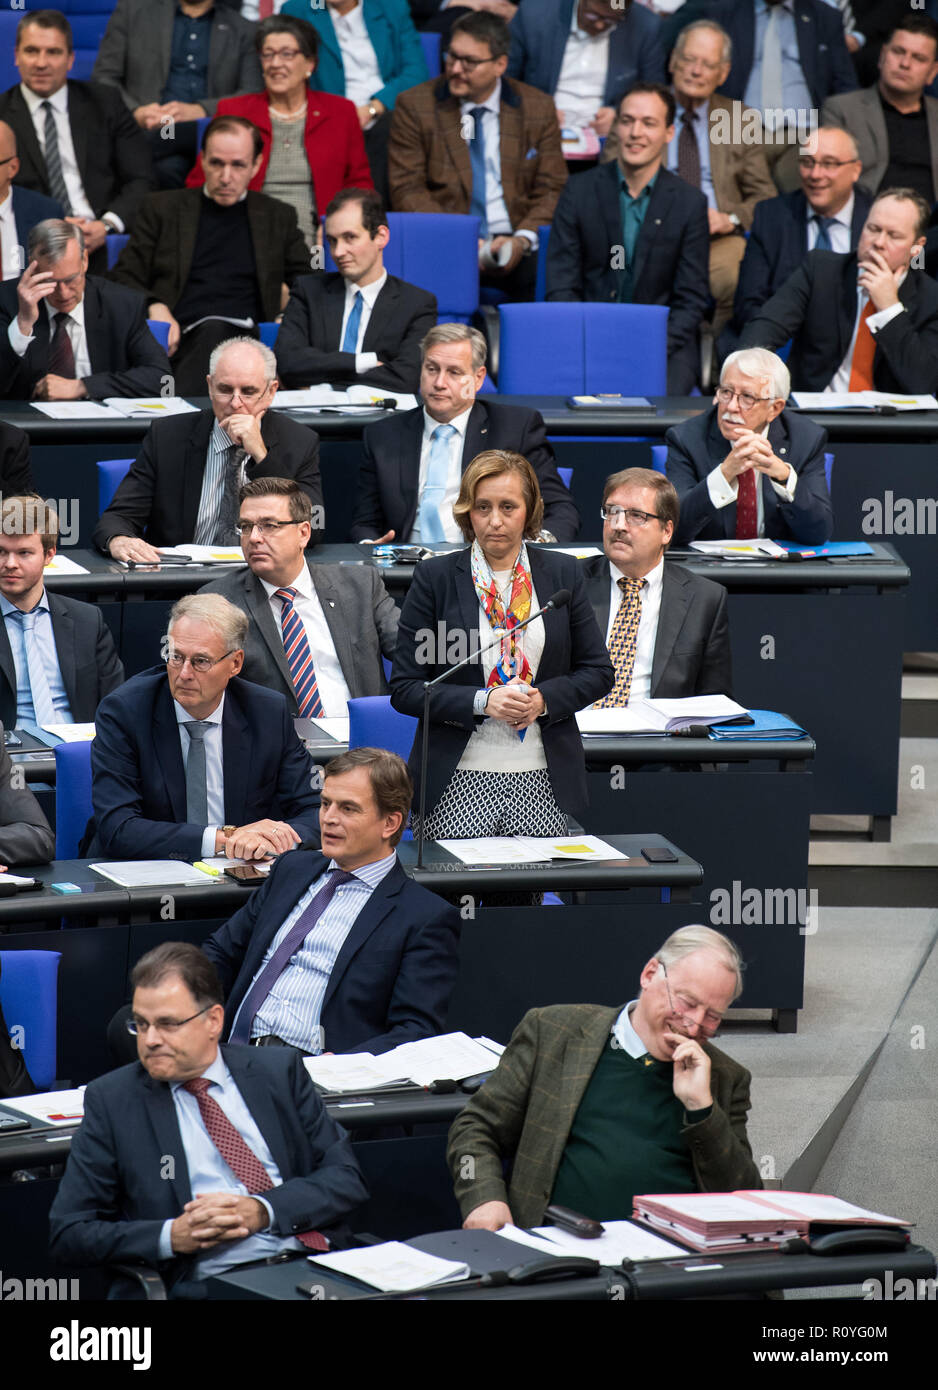 Berlin, Germany. 08th Nov, 2018. Beatrix von Storch (AfD) stands during the plenary session in the German Bundestag after an interposed question in her parliamentary group. Topics of the 61st session of the 19th legislative period include the pension package introduced by the Federal Government, additional safe countries of origin, tax relief for families, changes in asylum law, accelerated traffic planning and a current hour on the INF (Intermediate Range Nuclear Forces) nuclear disarmament treaty. Credit: Bernd von Jutrczenka/dpa/Alamy Live News - Stock Image